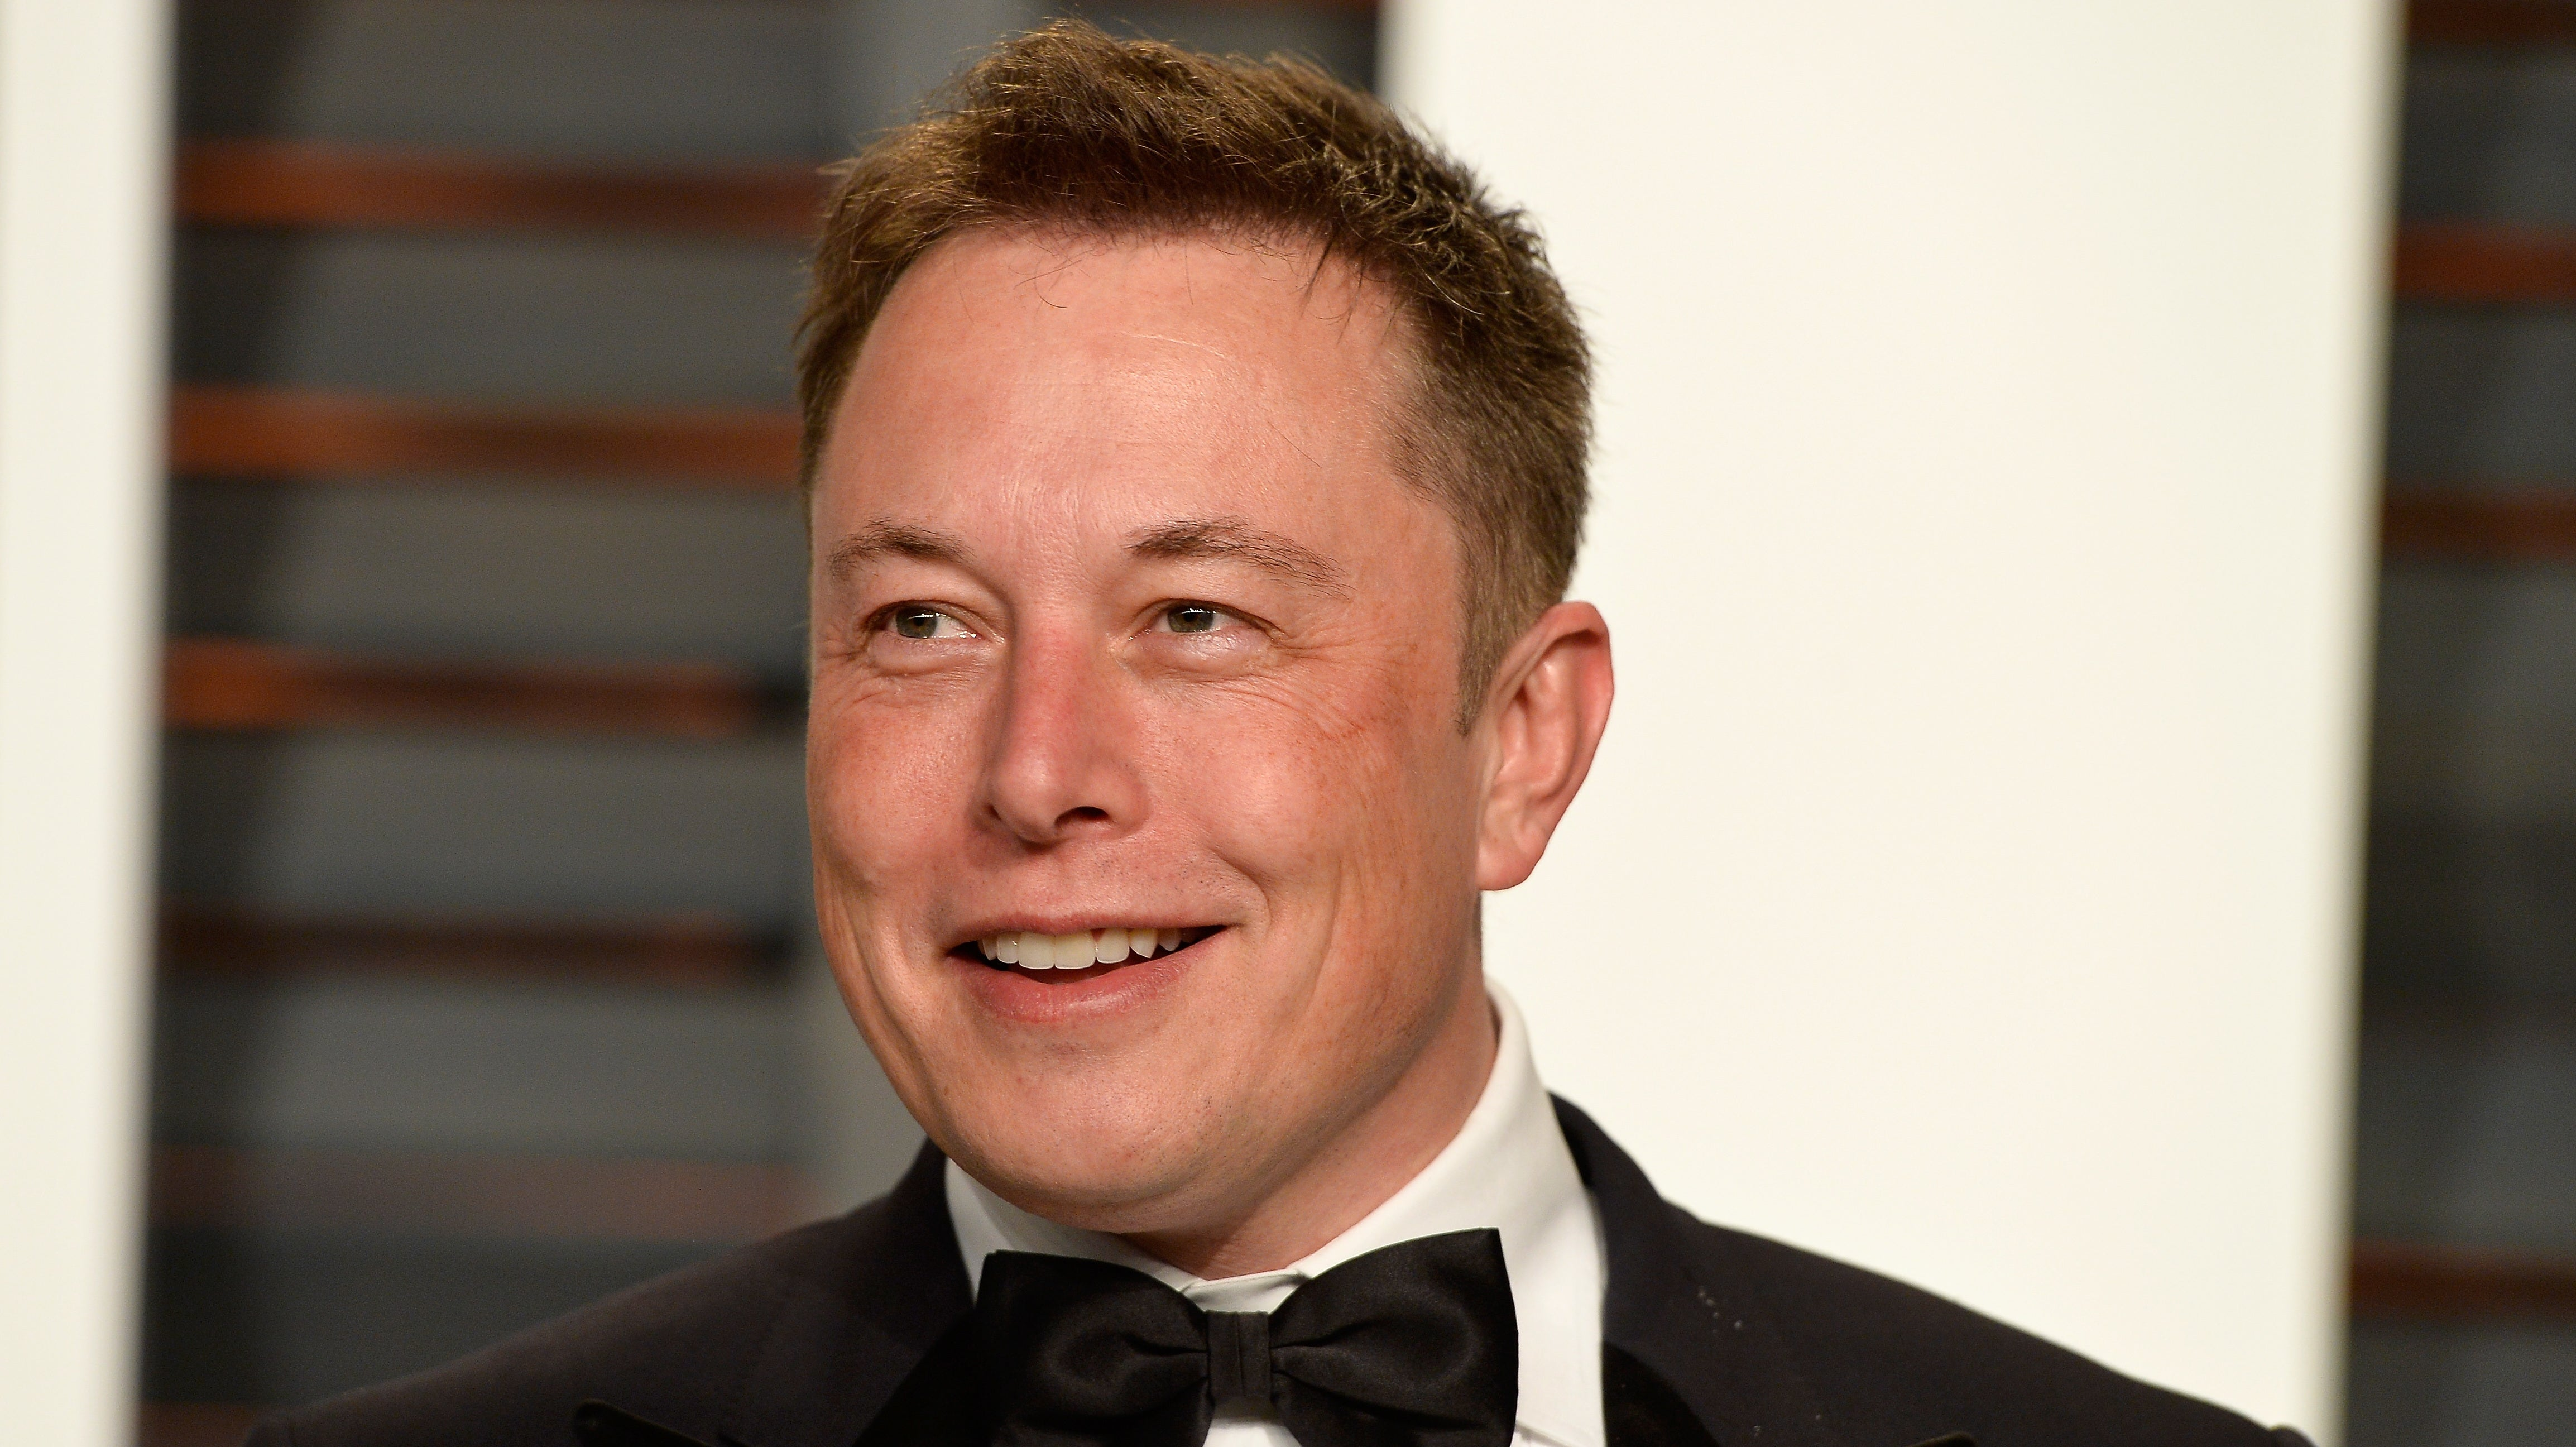 Elon Musk's Idea Of 'Excellent' Journalism Comes From An Alleged Sex Cult